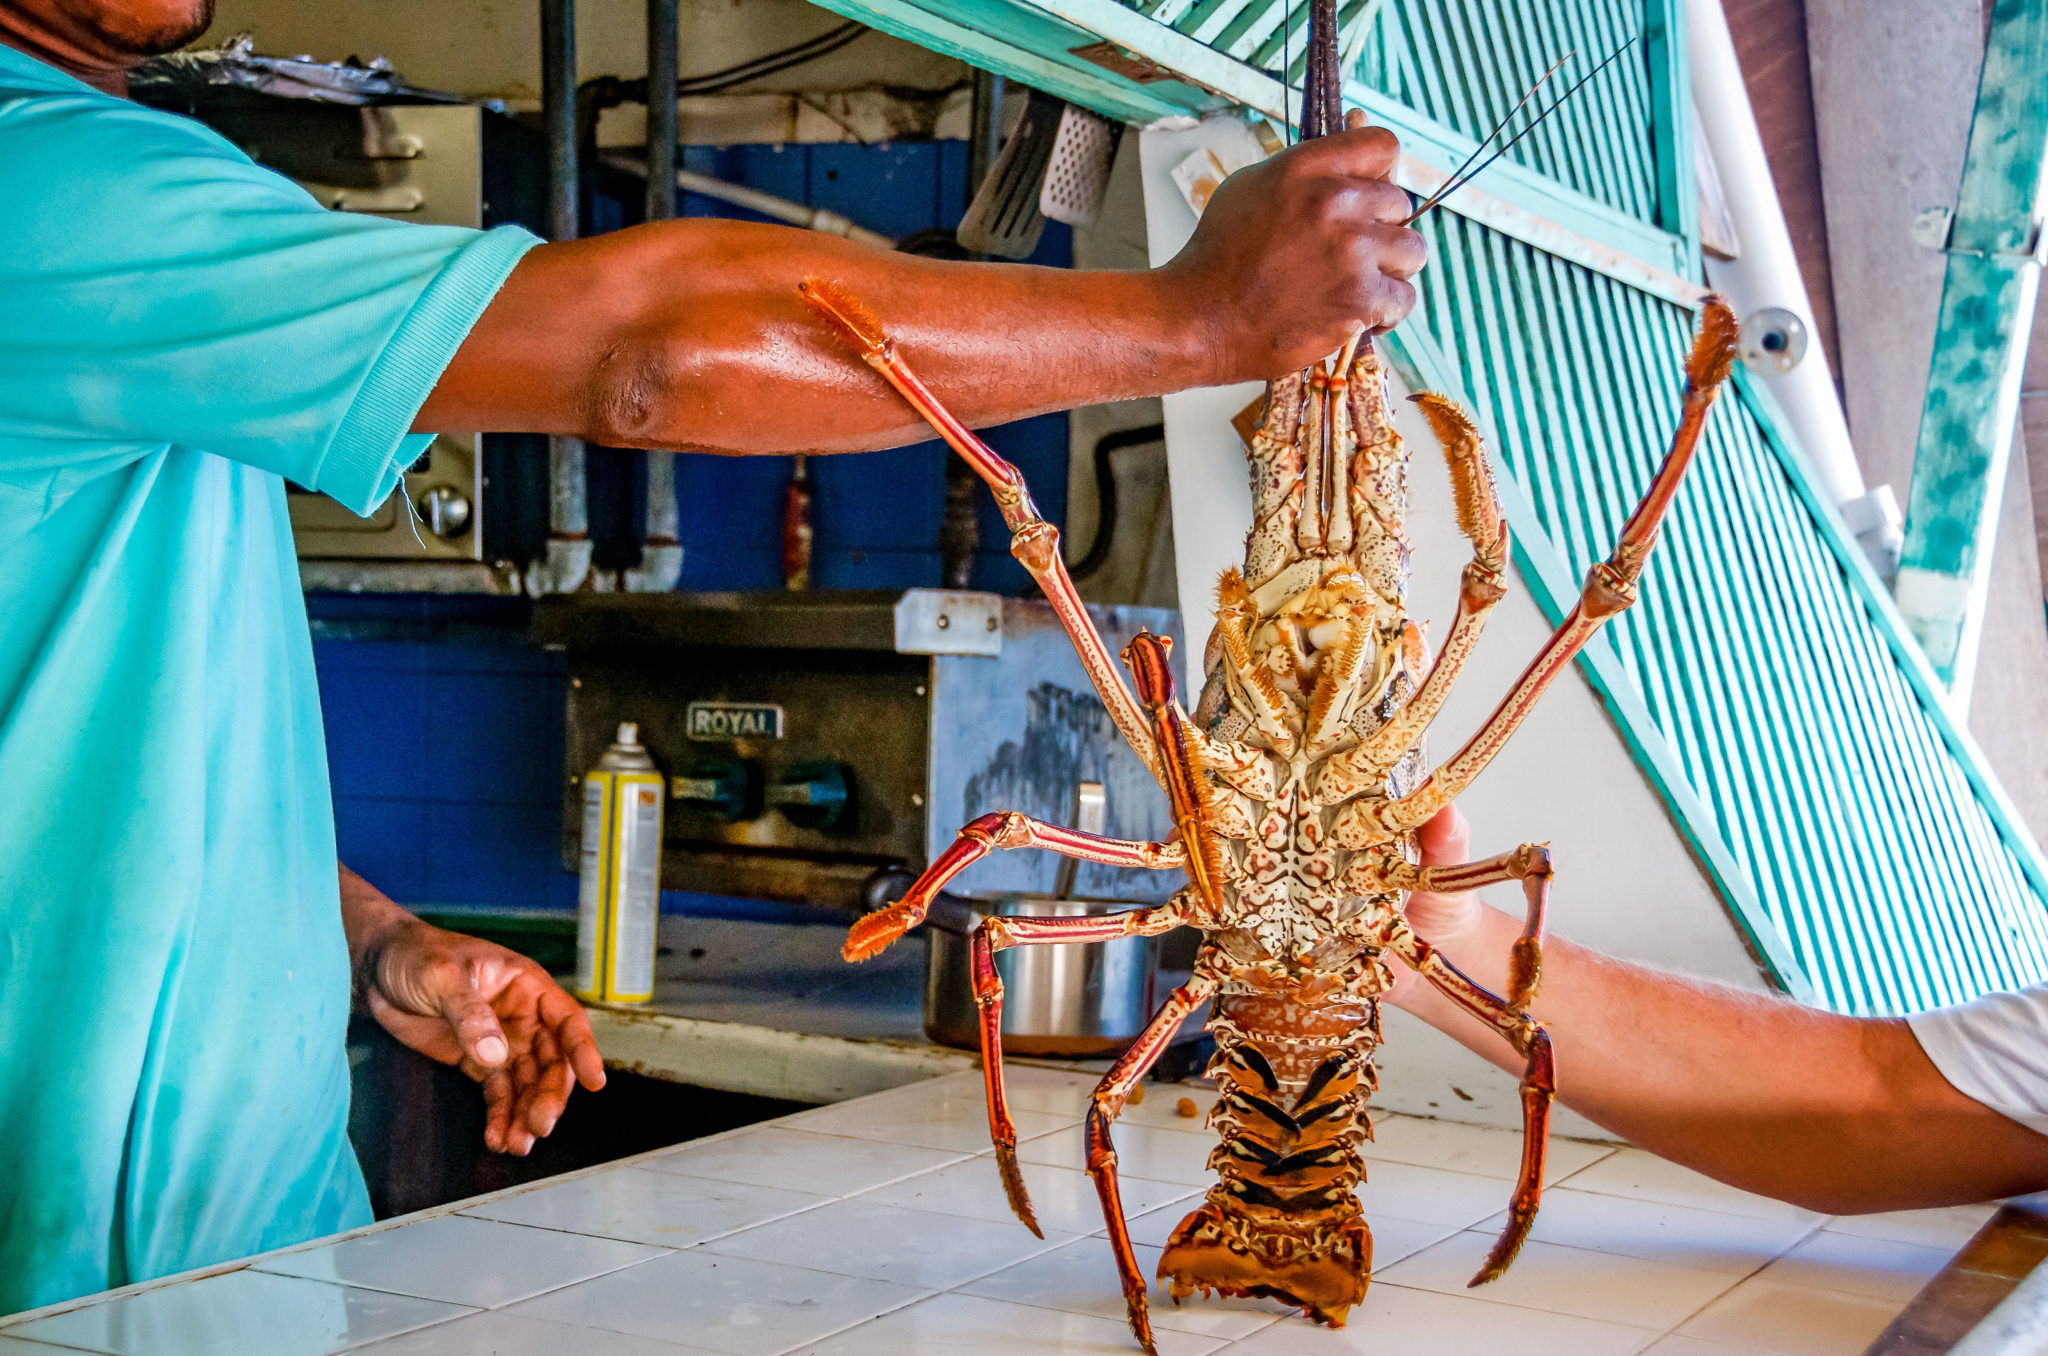 Spiny Lobster Caribbean Style—Not Your Average Maine Lobster